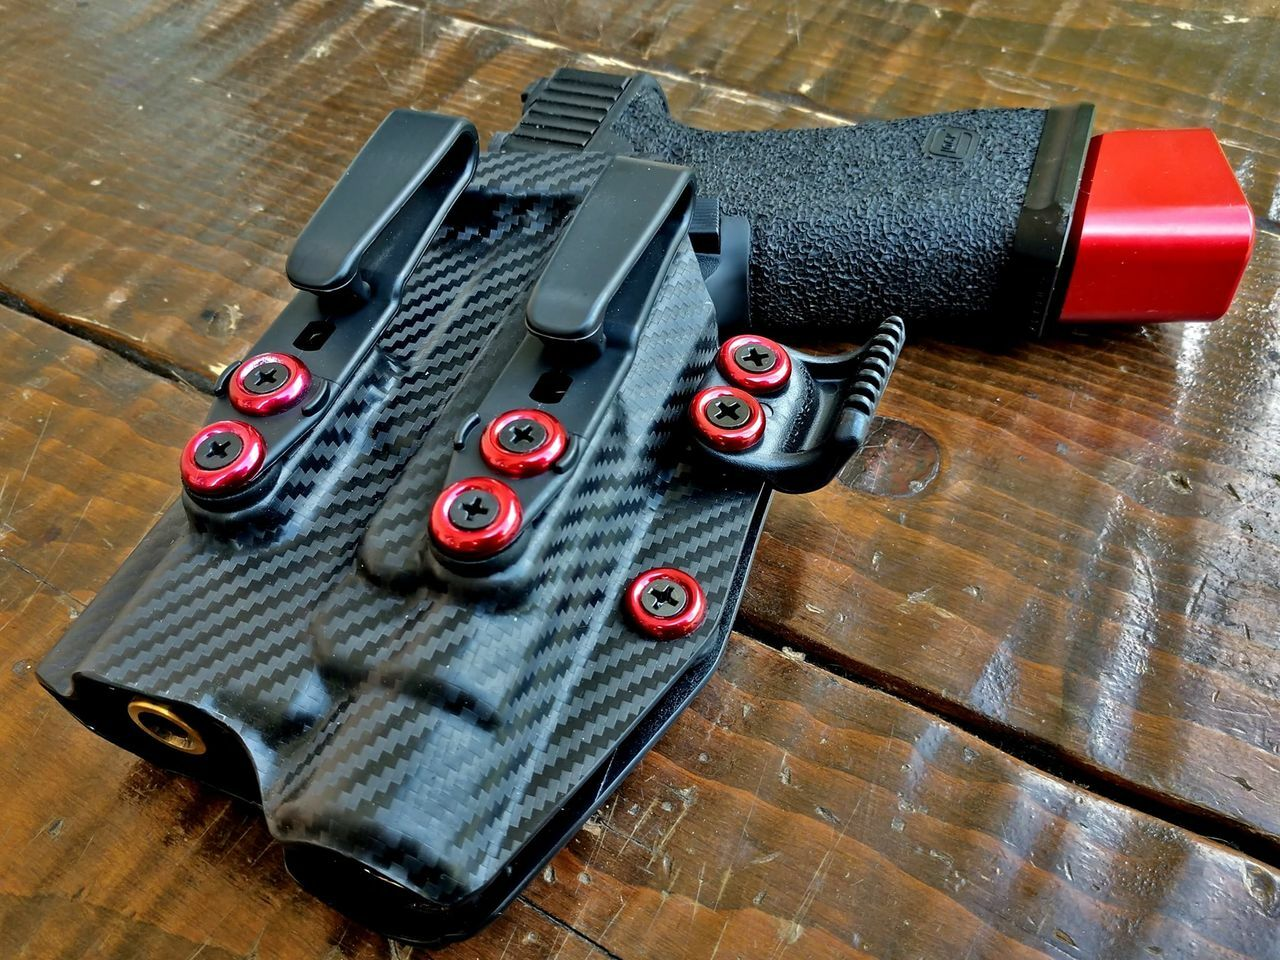 Glock 17 with TLR1 Holster